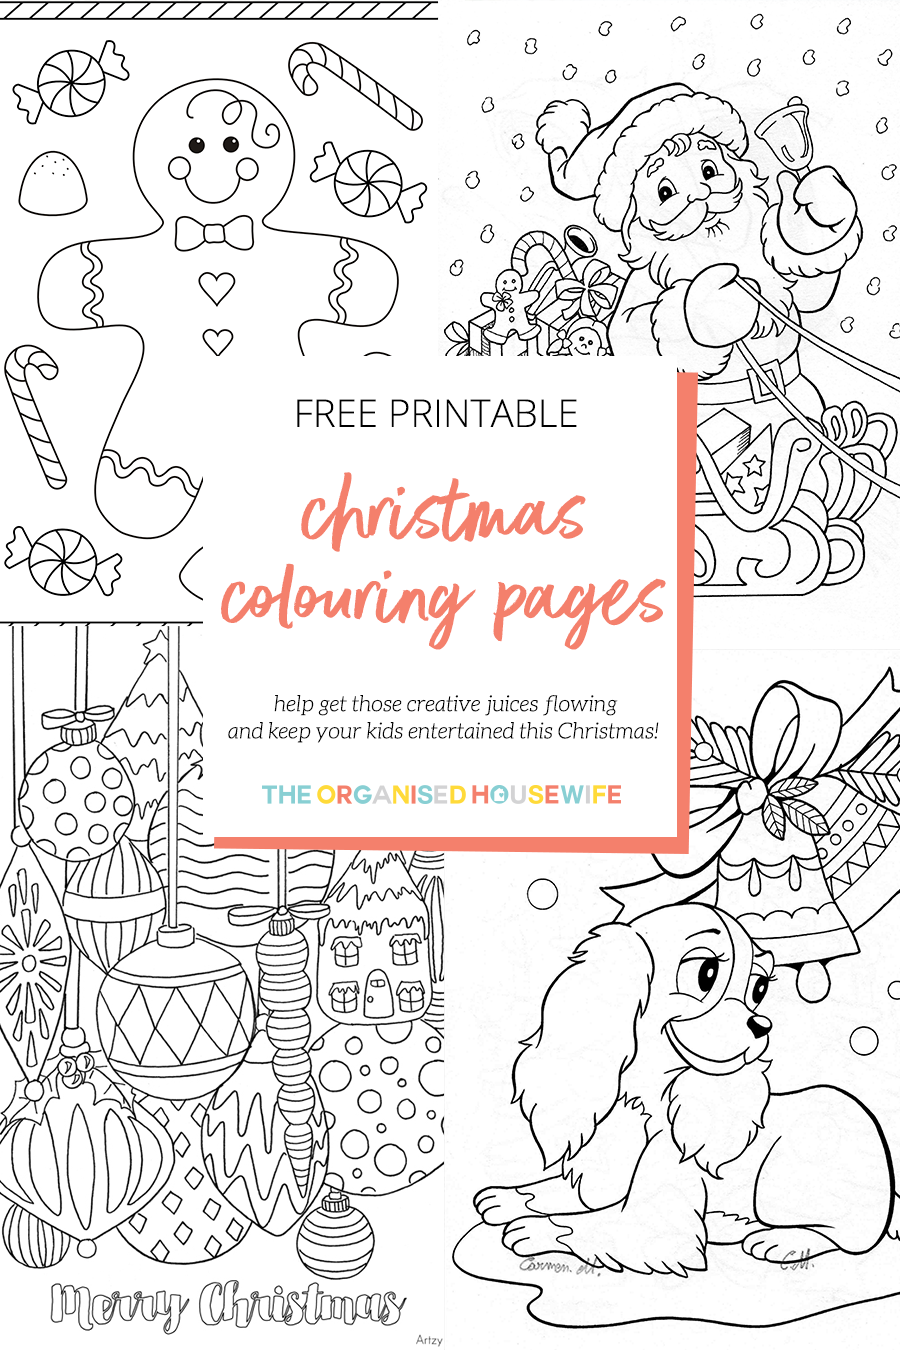 A Huge List Of Printable Christmas Colouring Pages To Help Get Those Creat Printable Christmas Coloring Pages Christmas Coloring Pages Christmas Coloring Books